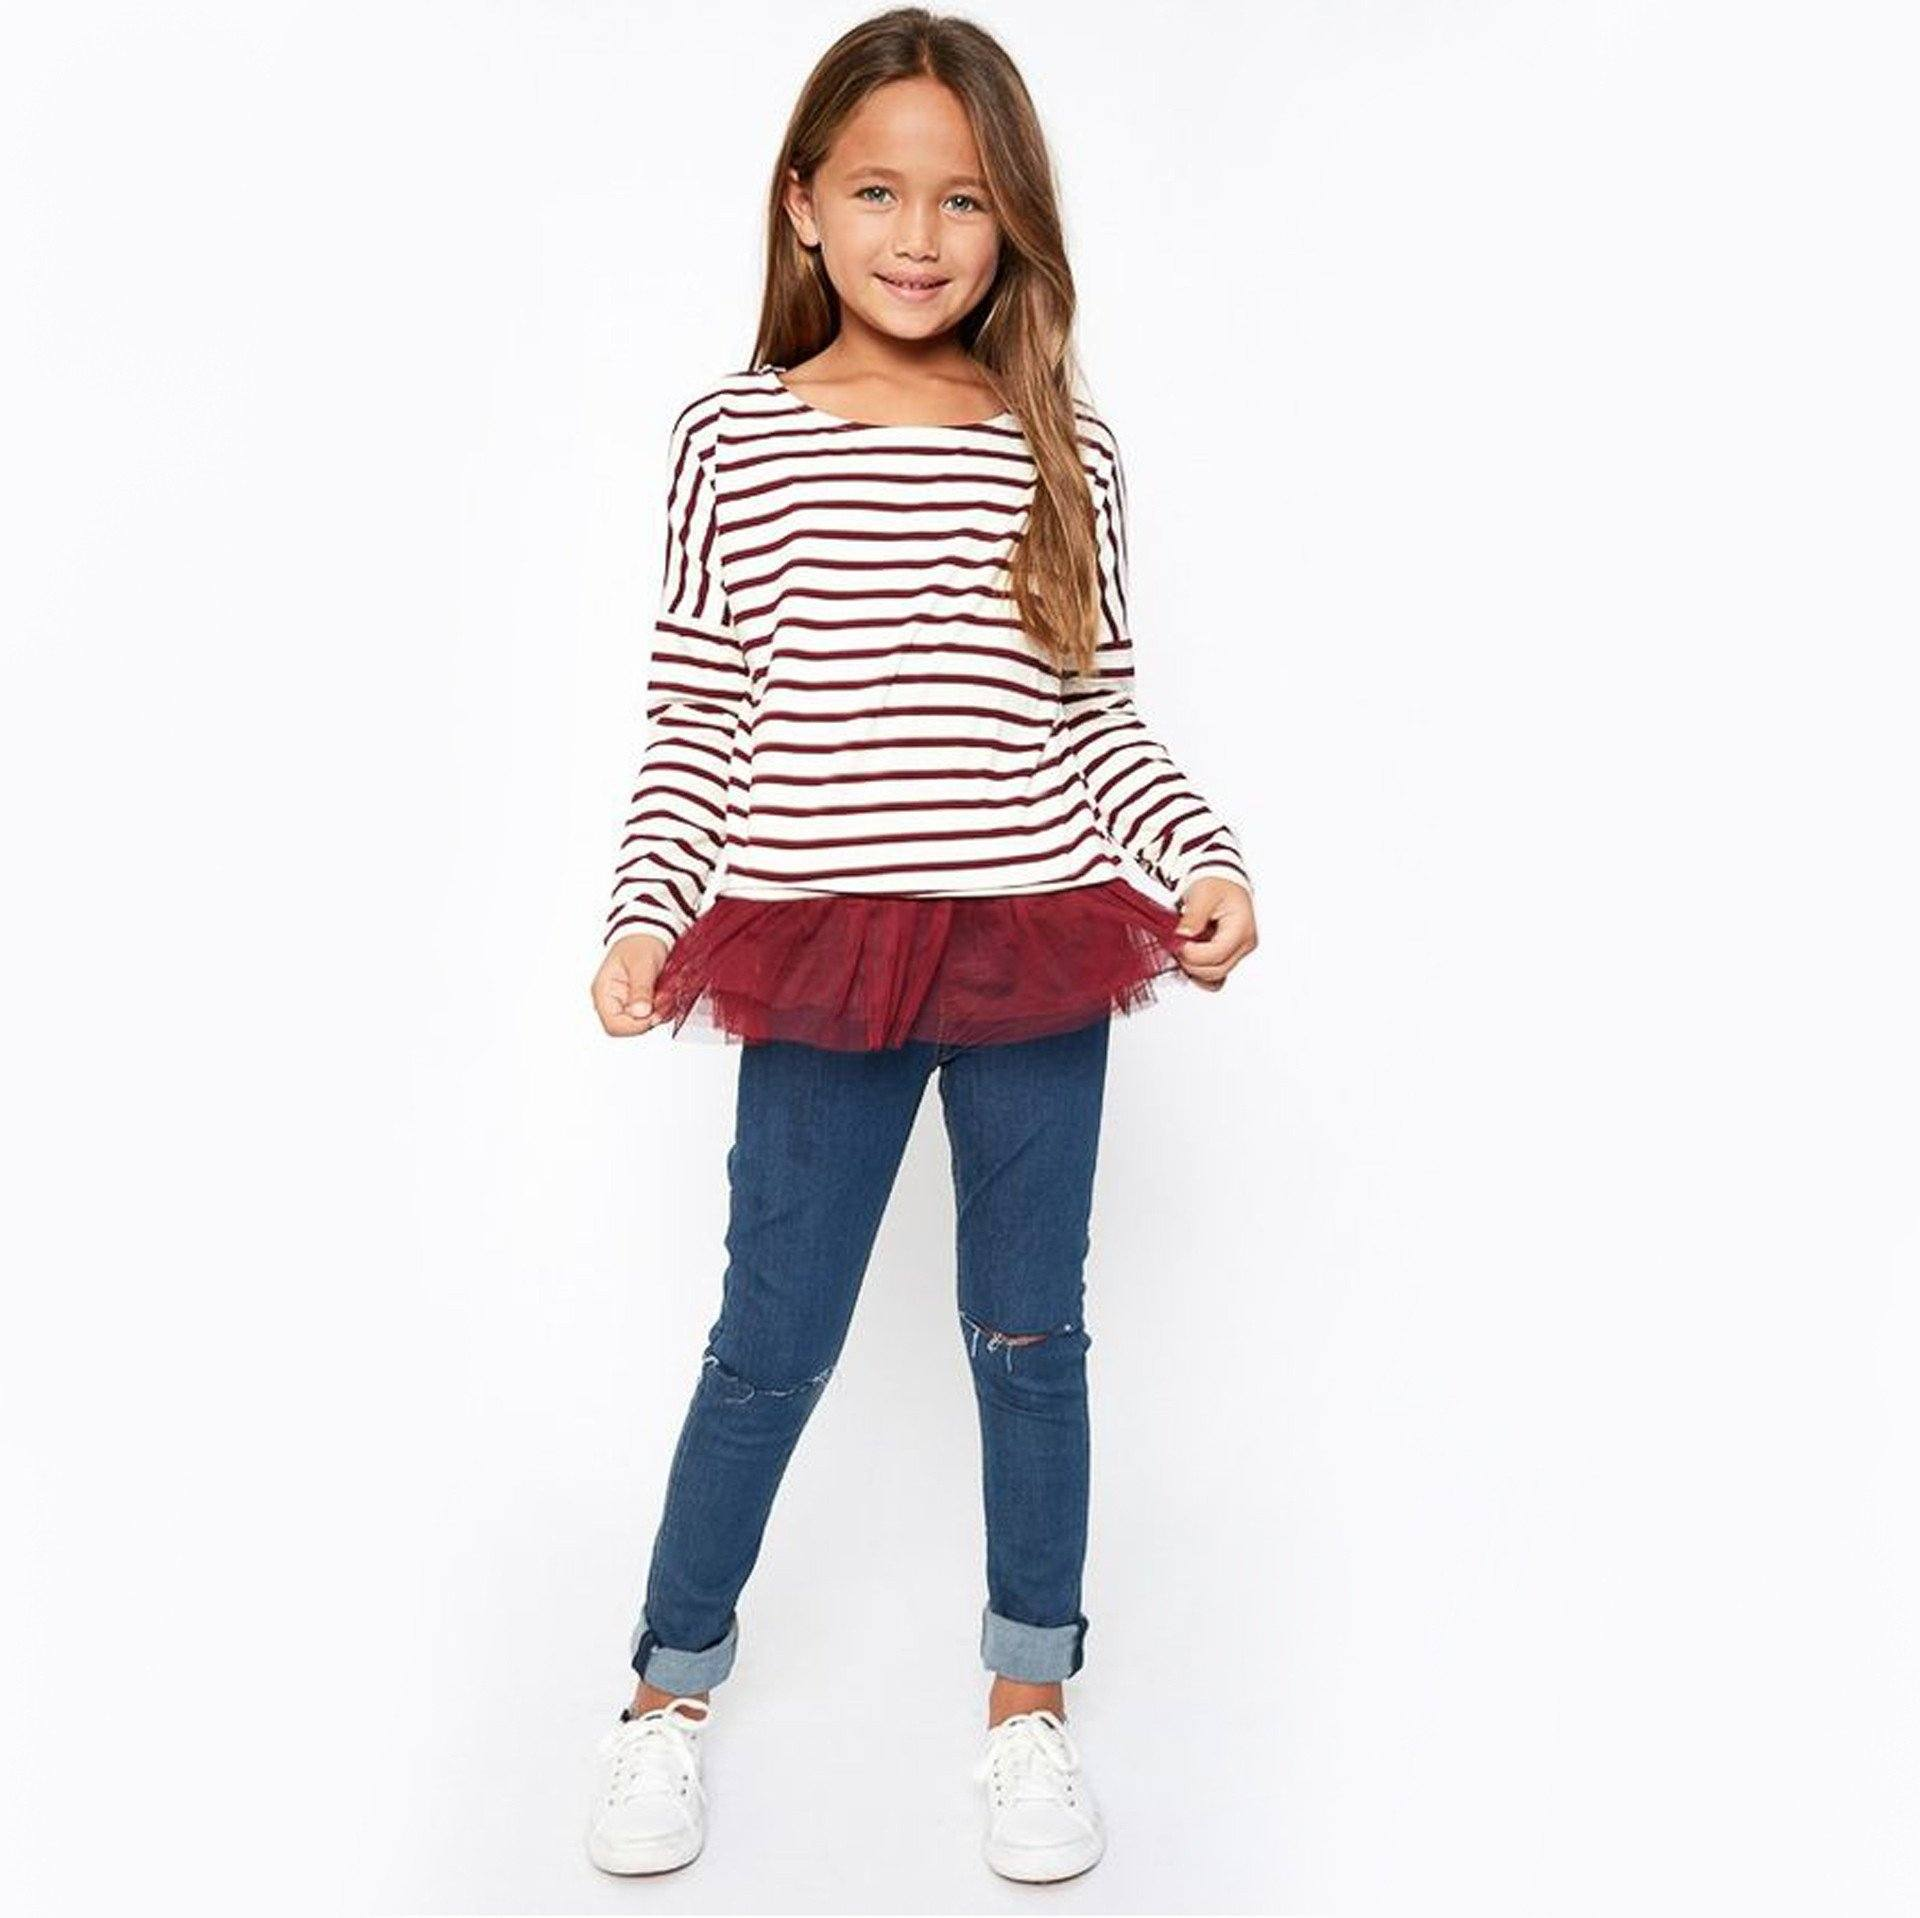 Striped Top With Tulle Hem (Girls Sz 7-14) - Arlo and Arrows